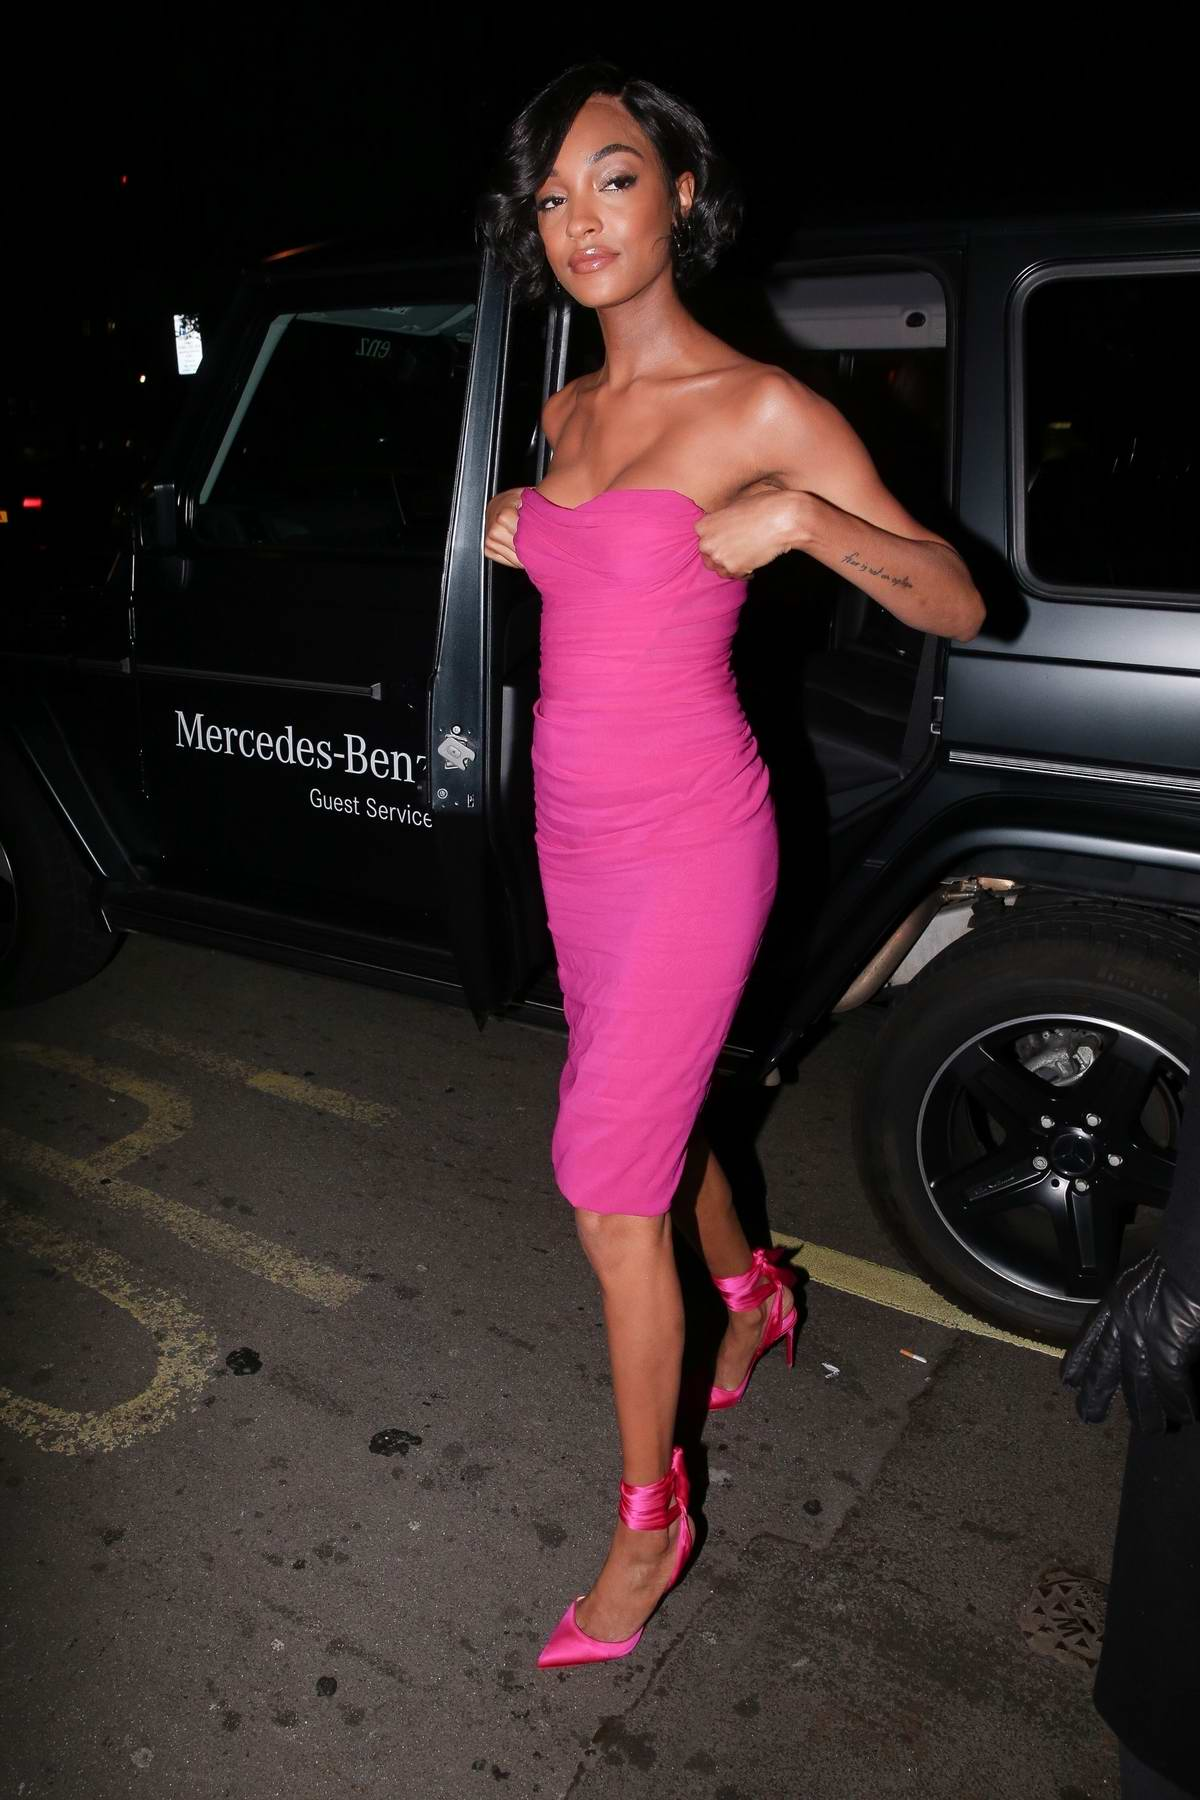 Jourdan Dunn attend the Vogue x Tiffany & Co BAFTA after-party, held at Annabel's Private Members Club in Mayfair, London